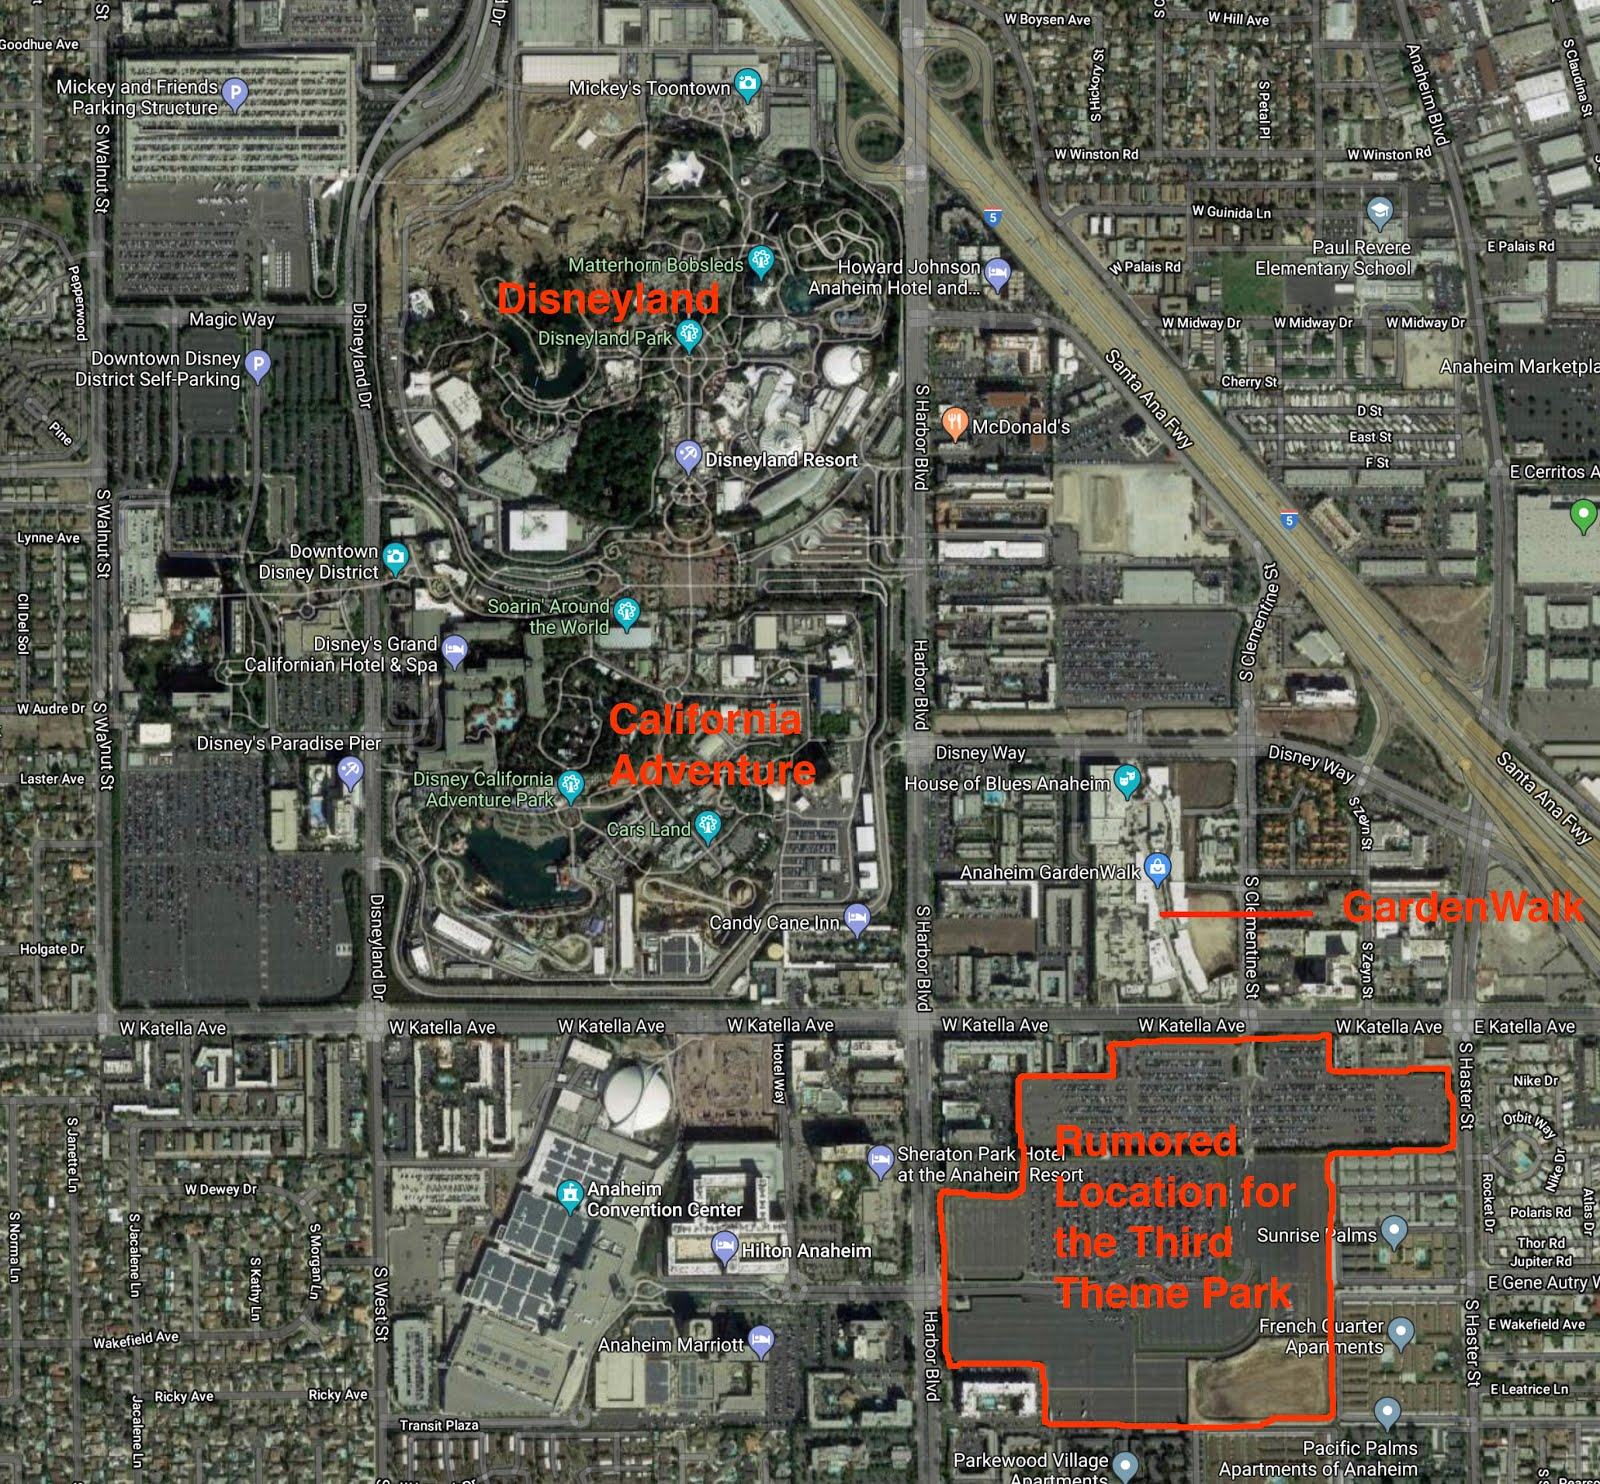 Will the Land of Anaheim Angel Stadium be the One Where ... Satellite Map Of Anaheim on map of copperopolis, map of fashion valley, map of thousand palms, map of pope valley, map of staples center, map of east hollywood, map of crystal cathedral, map of los angeles, map of willits, map of venice beach, map of downtown disney district, map of orange, map of alpine meadows, map of boulevard, map of disneyland, map of el toro, map of little saigon, map of lawndale, map of marin city, map of leucadia,